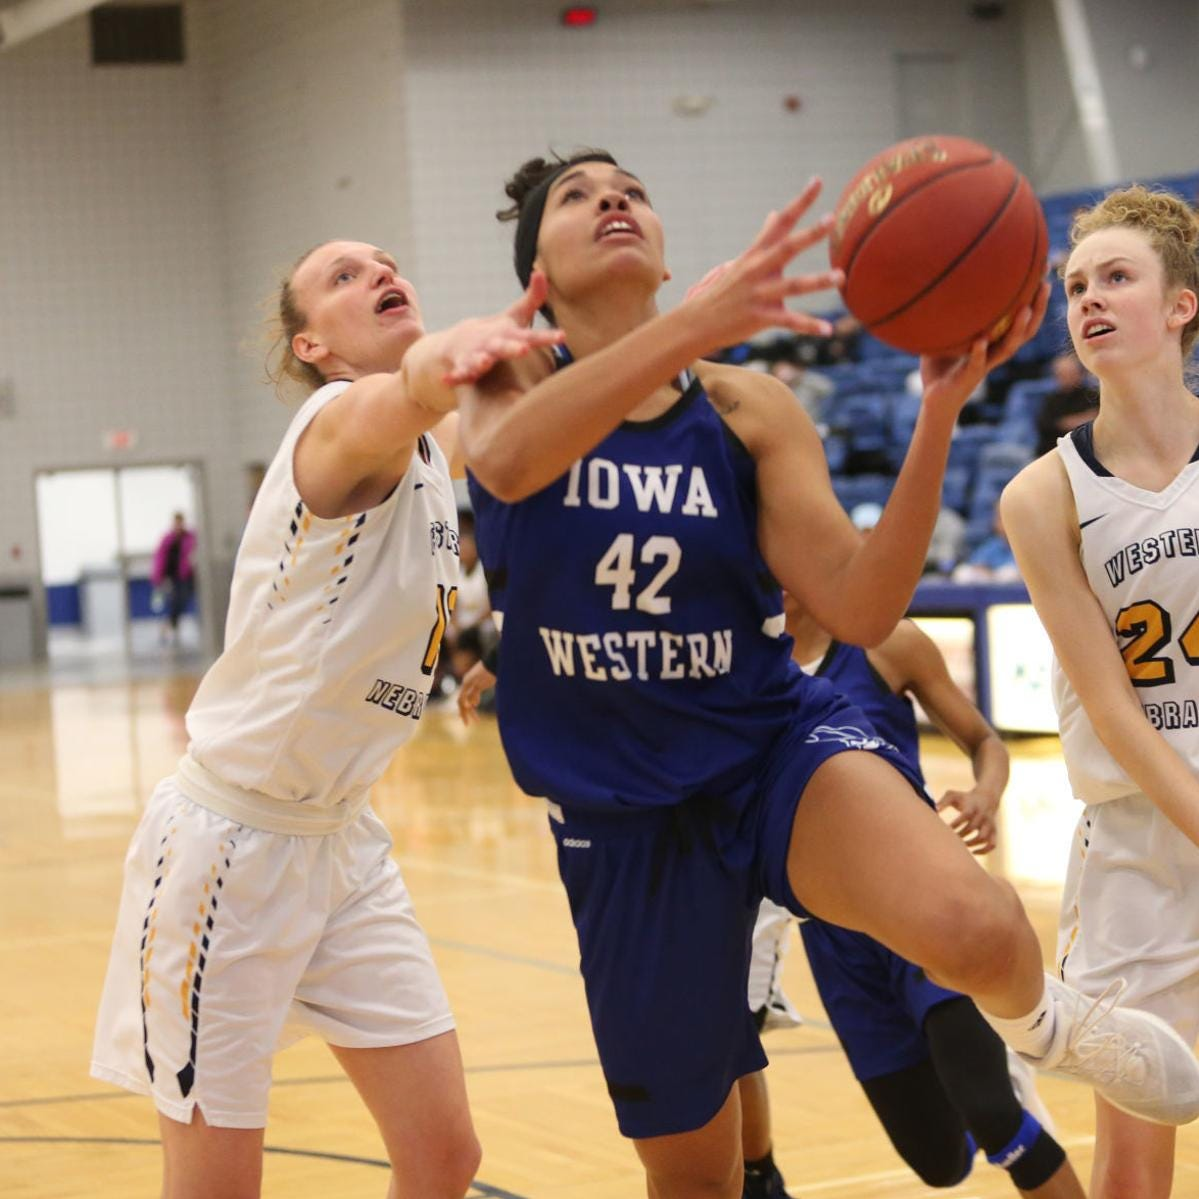 Sheboygan North grad Kiara Dallmann commits to DePaul after starring at junior college